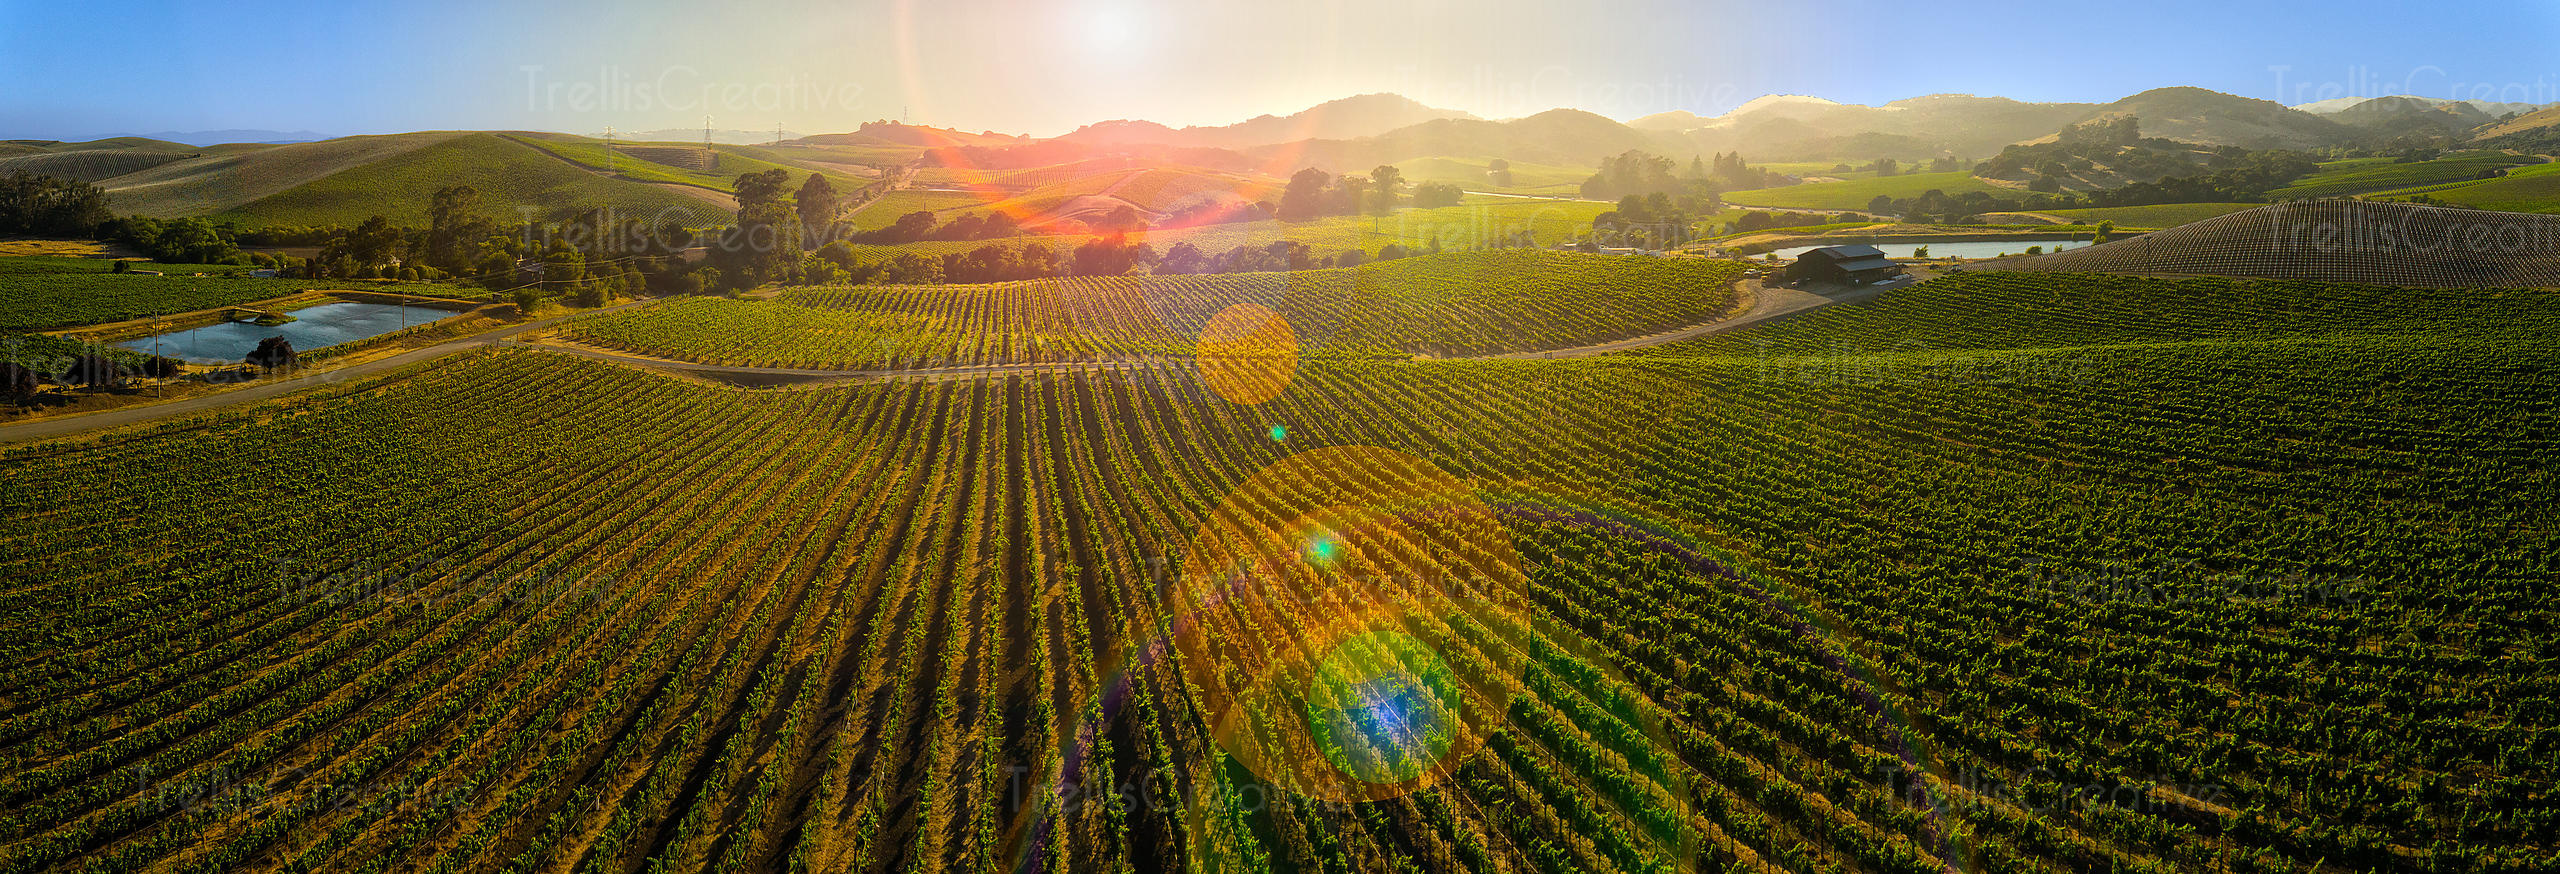 Aerial panoramic views of vineyard landscape in Napa valley